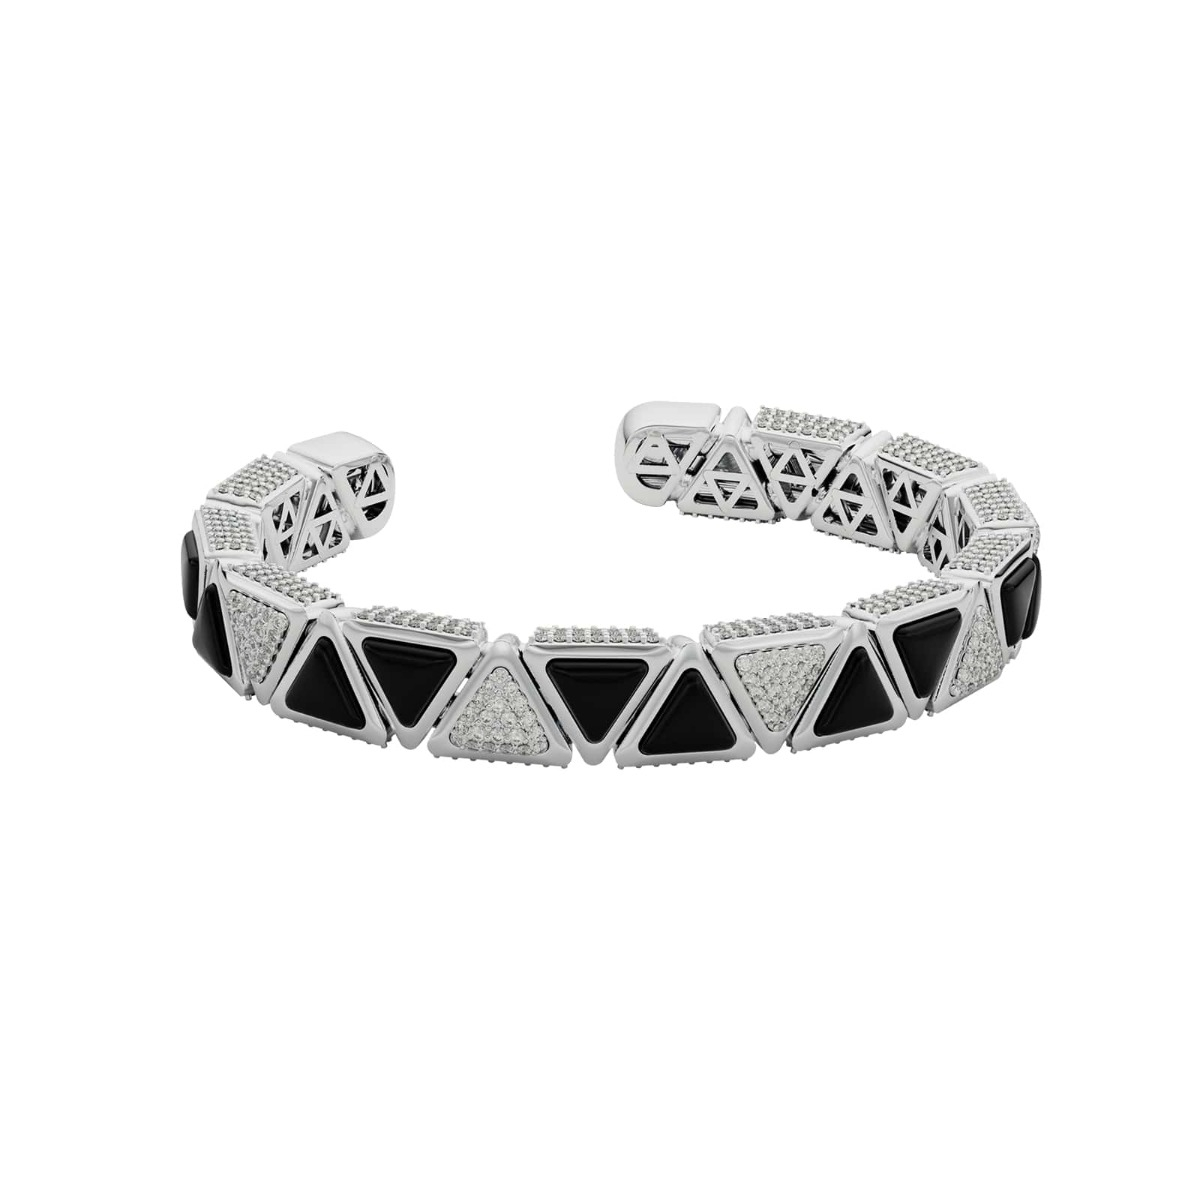 Diamond and Onyx Triangle Bangle Bracelet in 18 Kt White Gold - Mirror Collection